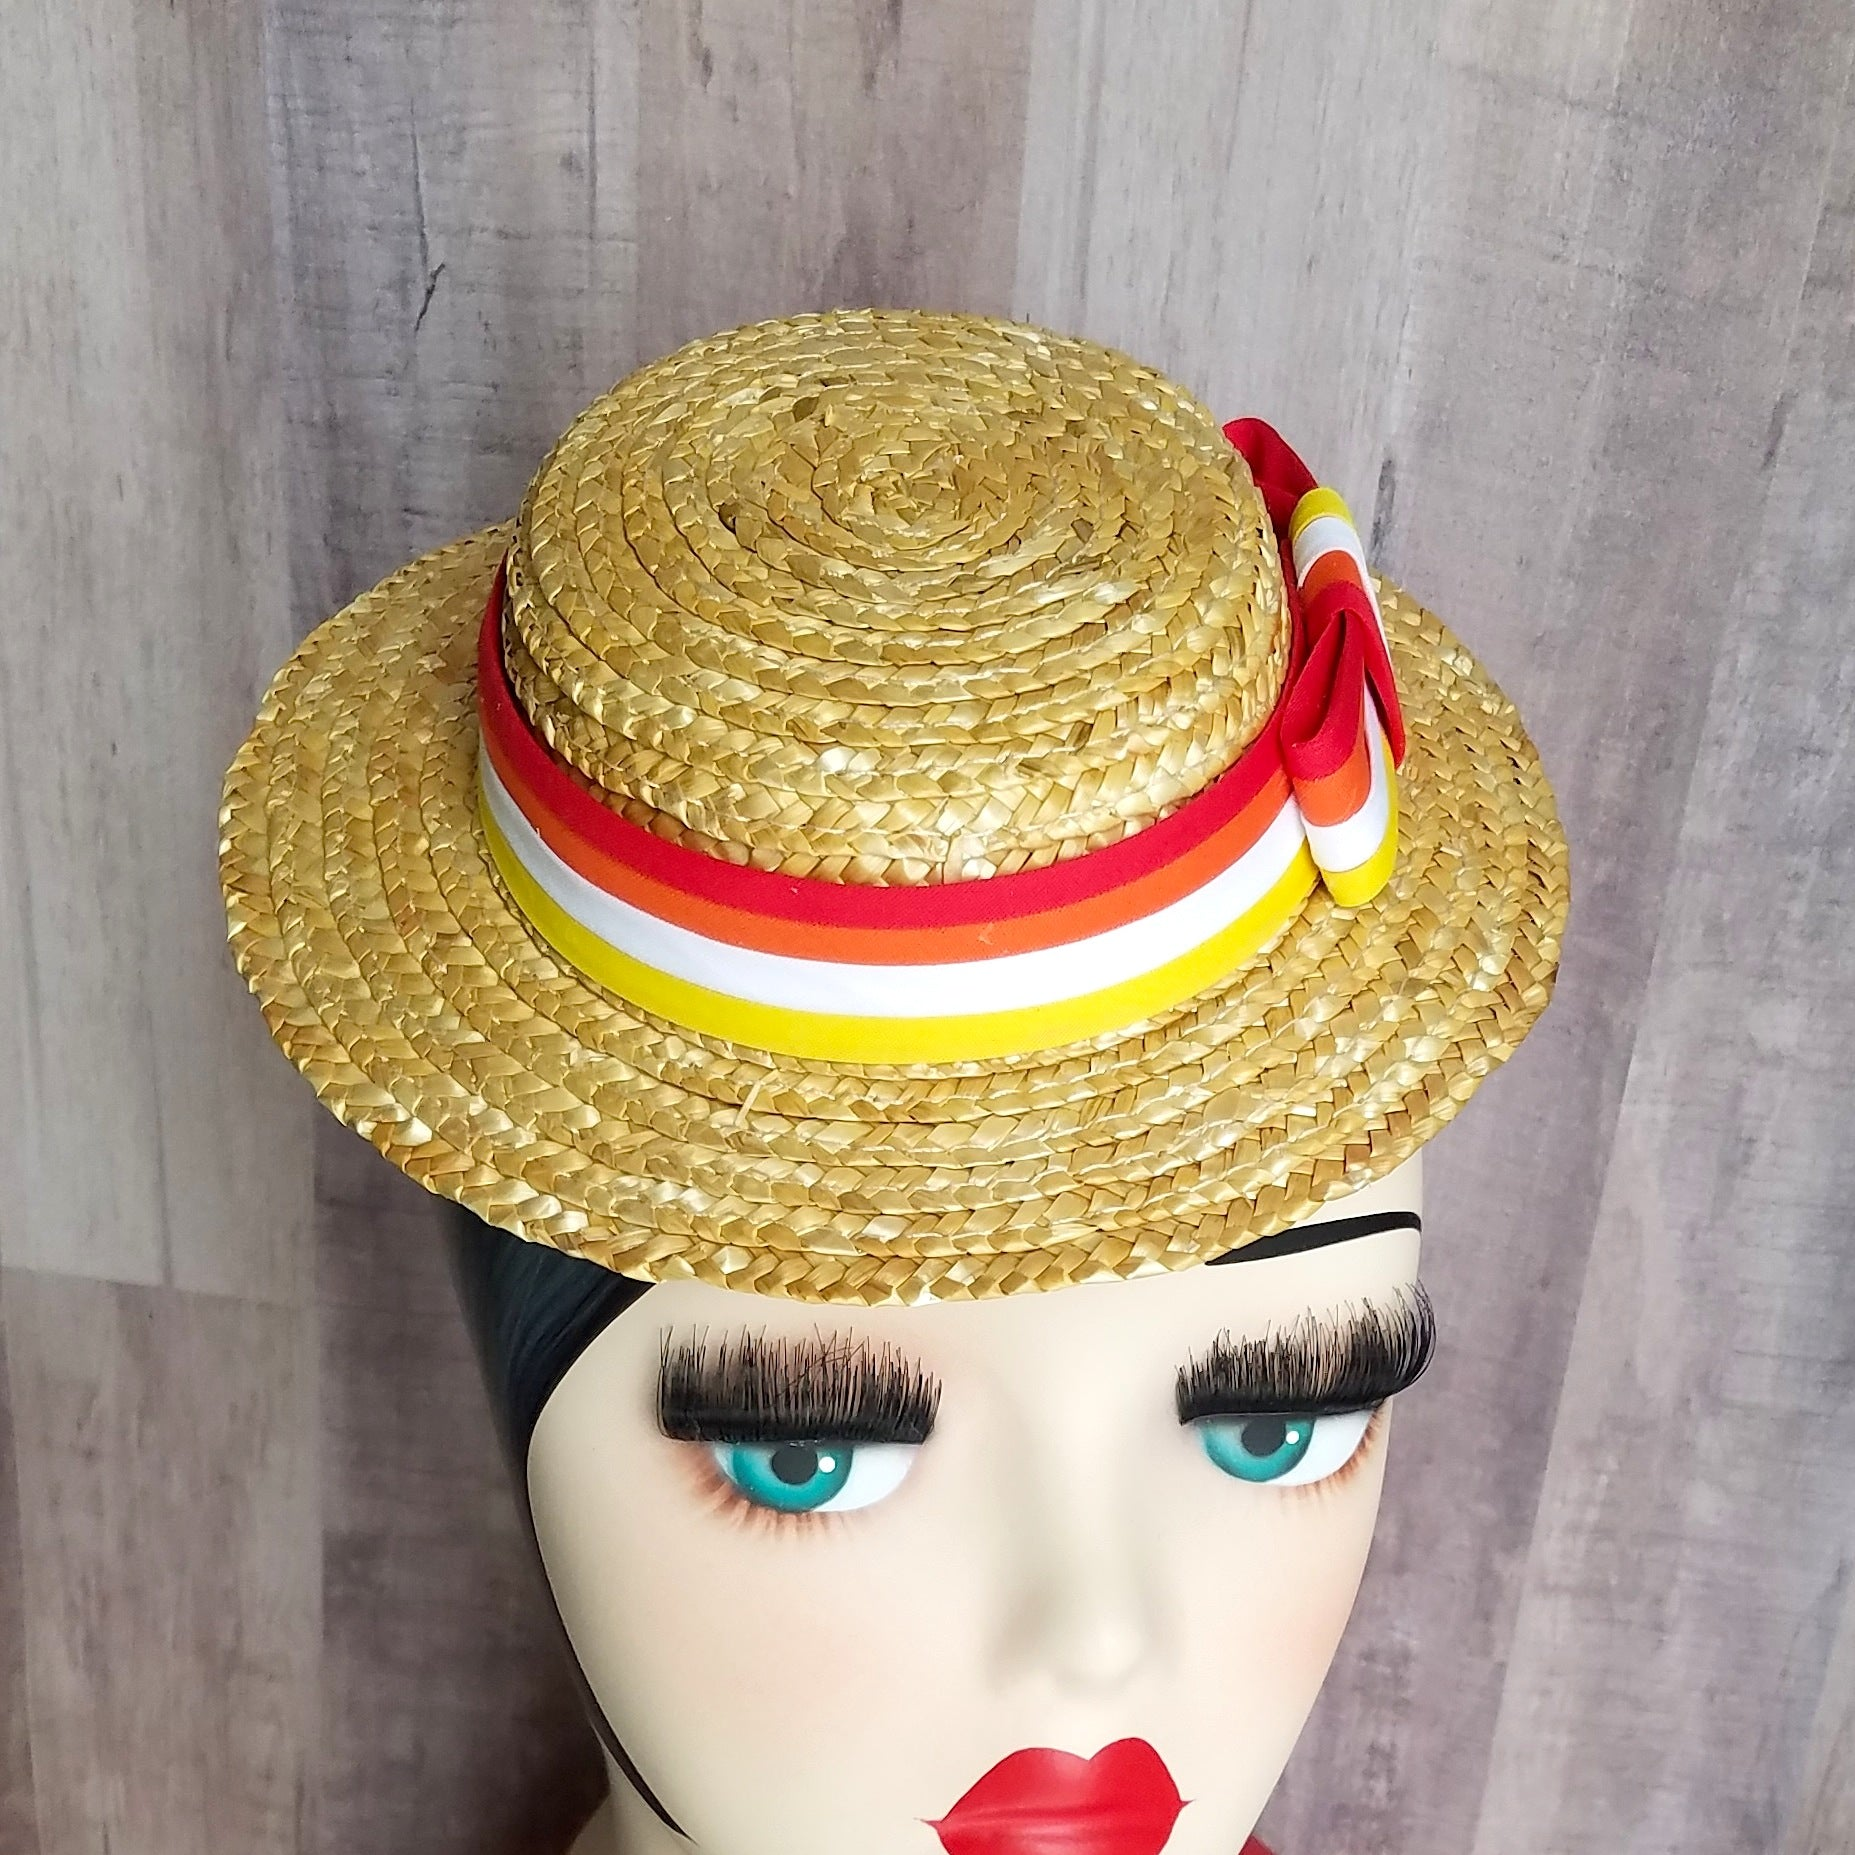 ... Bert Mary Poppins Jolly Holiday Mini Straw Hat Fascinator for Dapper  Day e5d463a6d8a